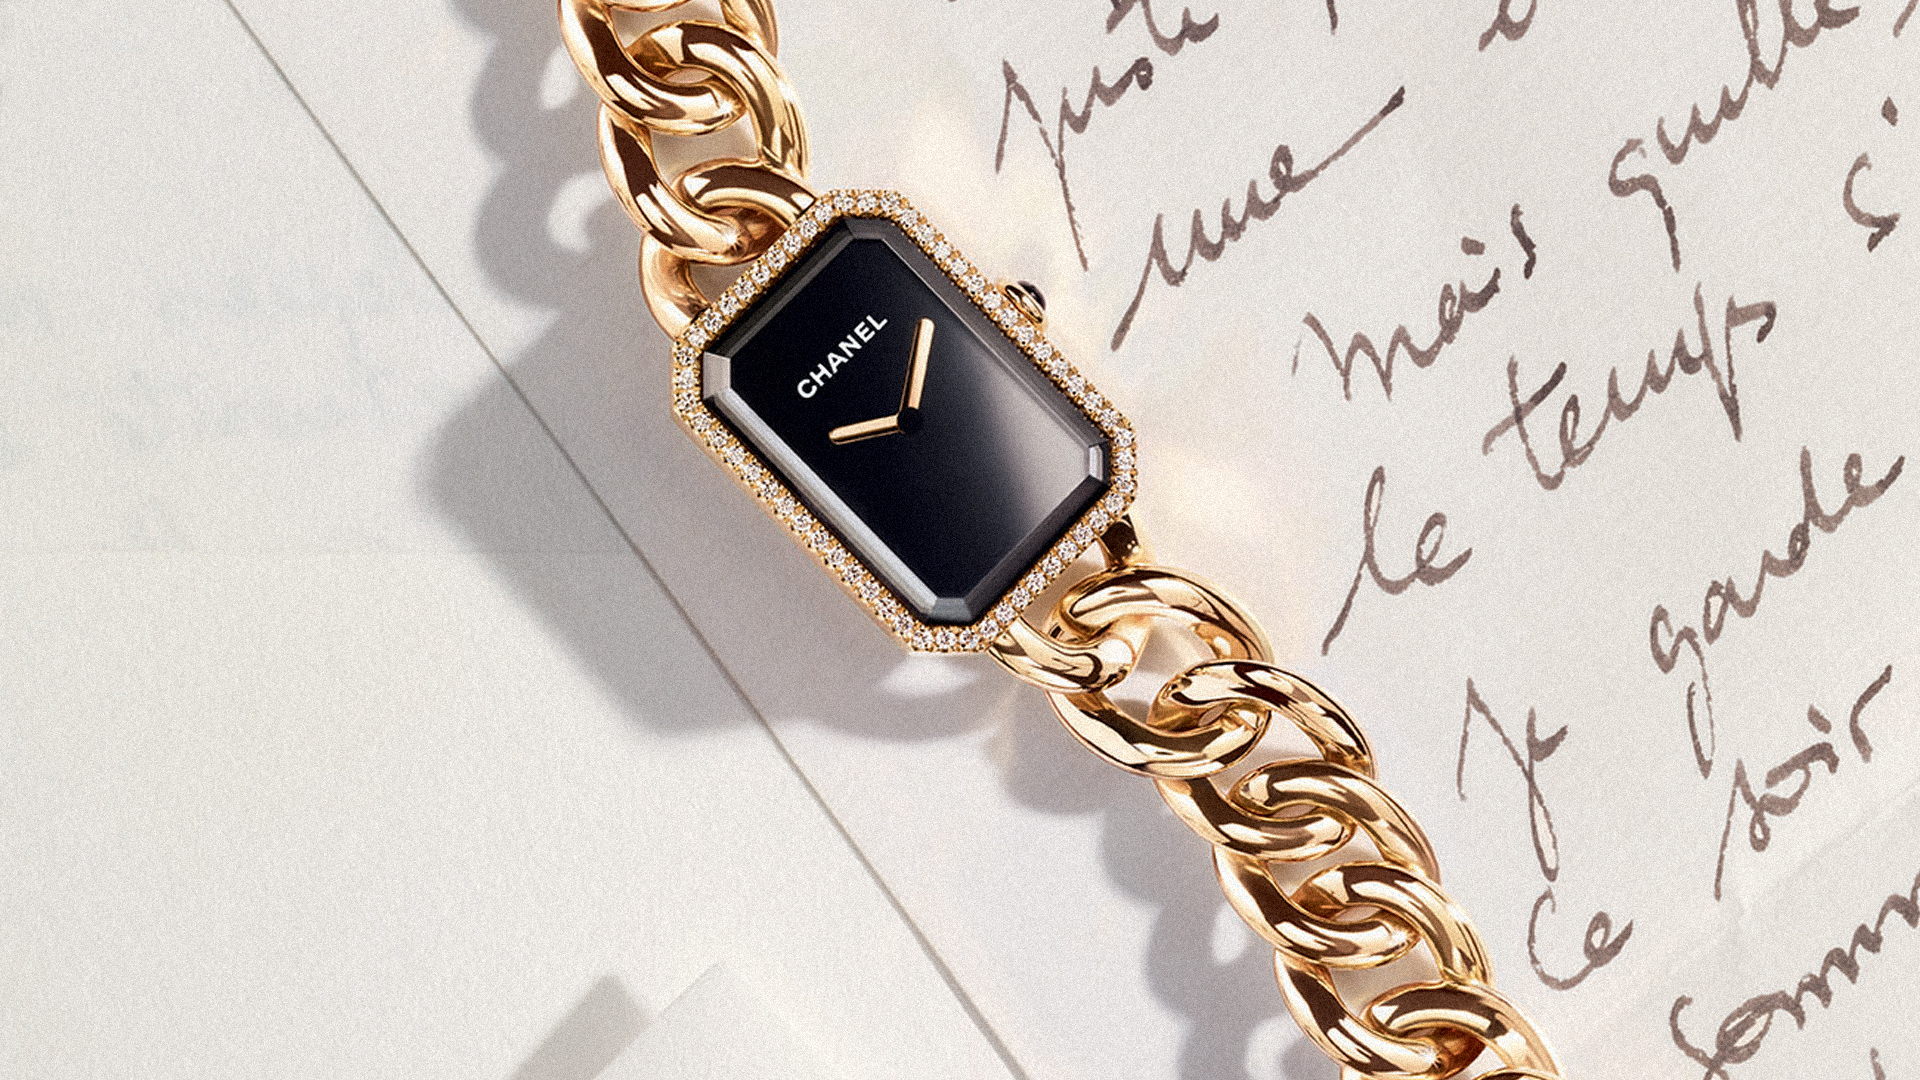 Chanel Premiere Watch - Gold with Diamonds